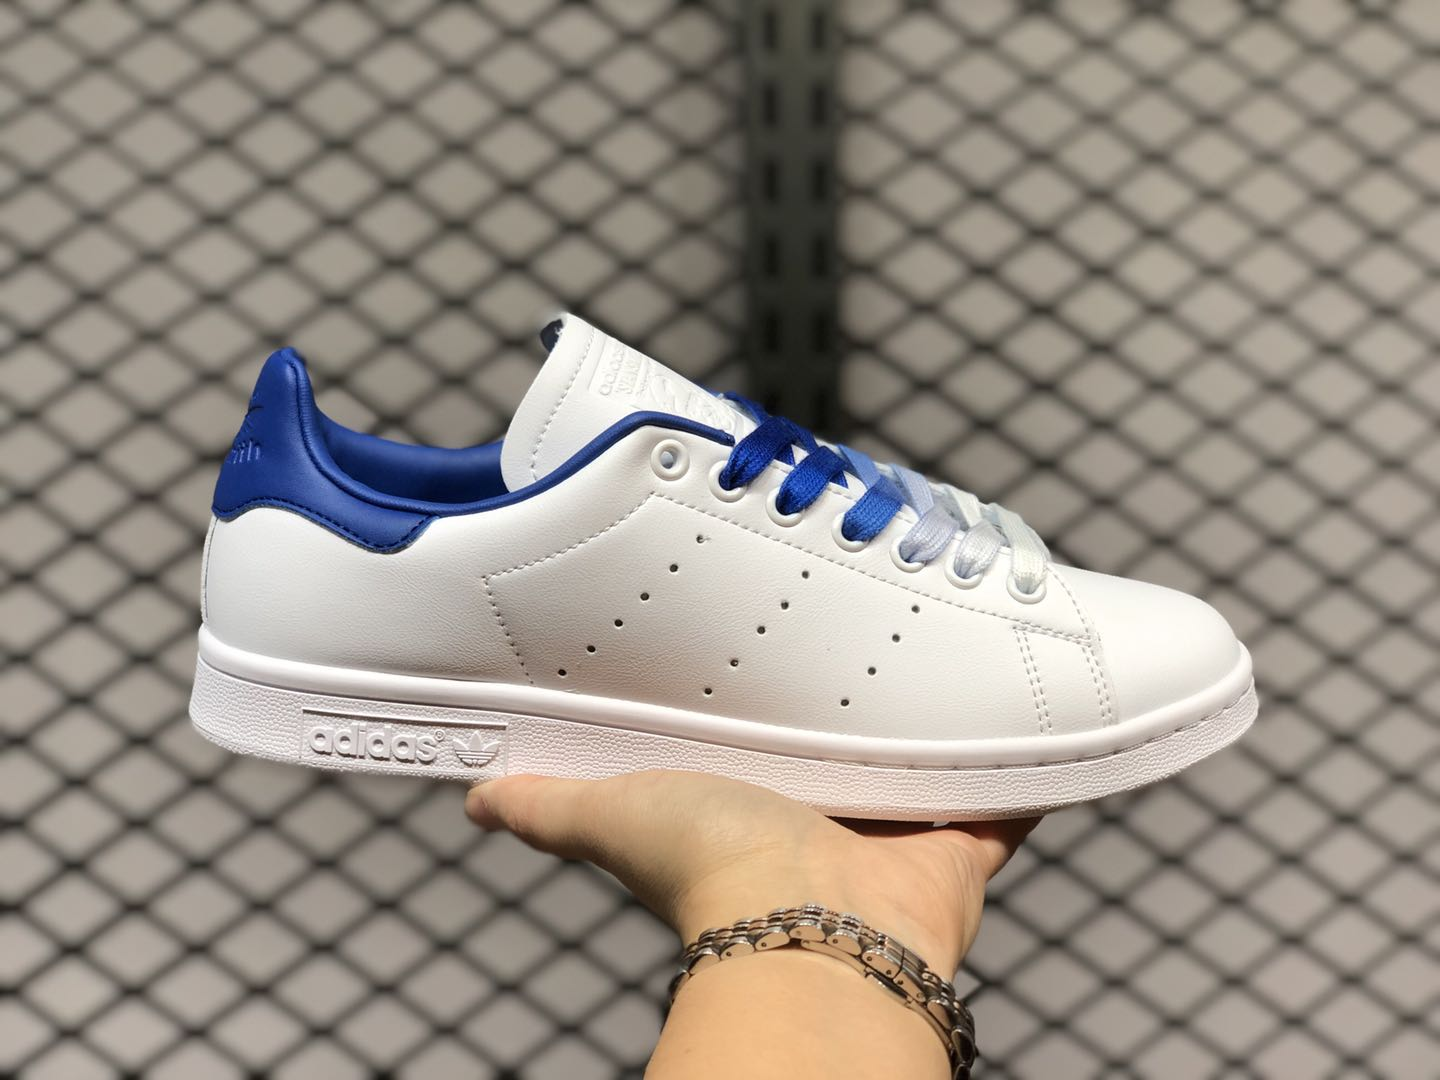 Adidas Stan Smith Shoes Cloud White-Royal Blue Online Buy EF4690